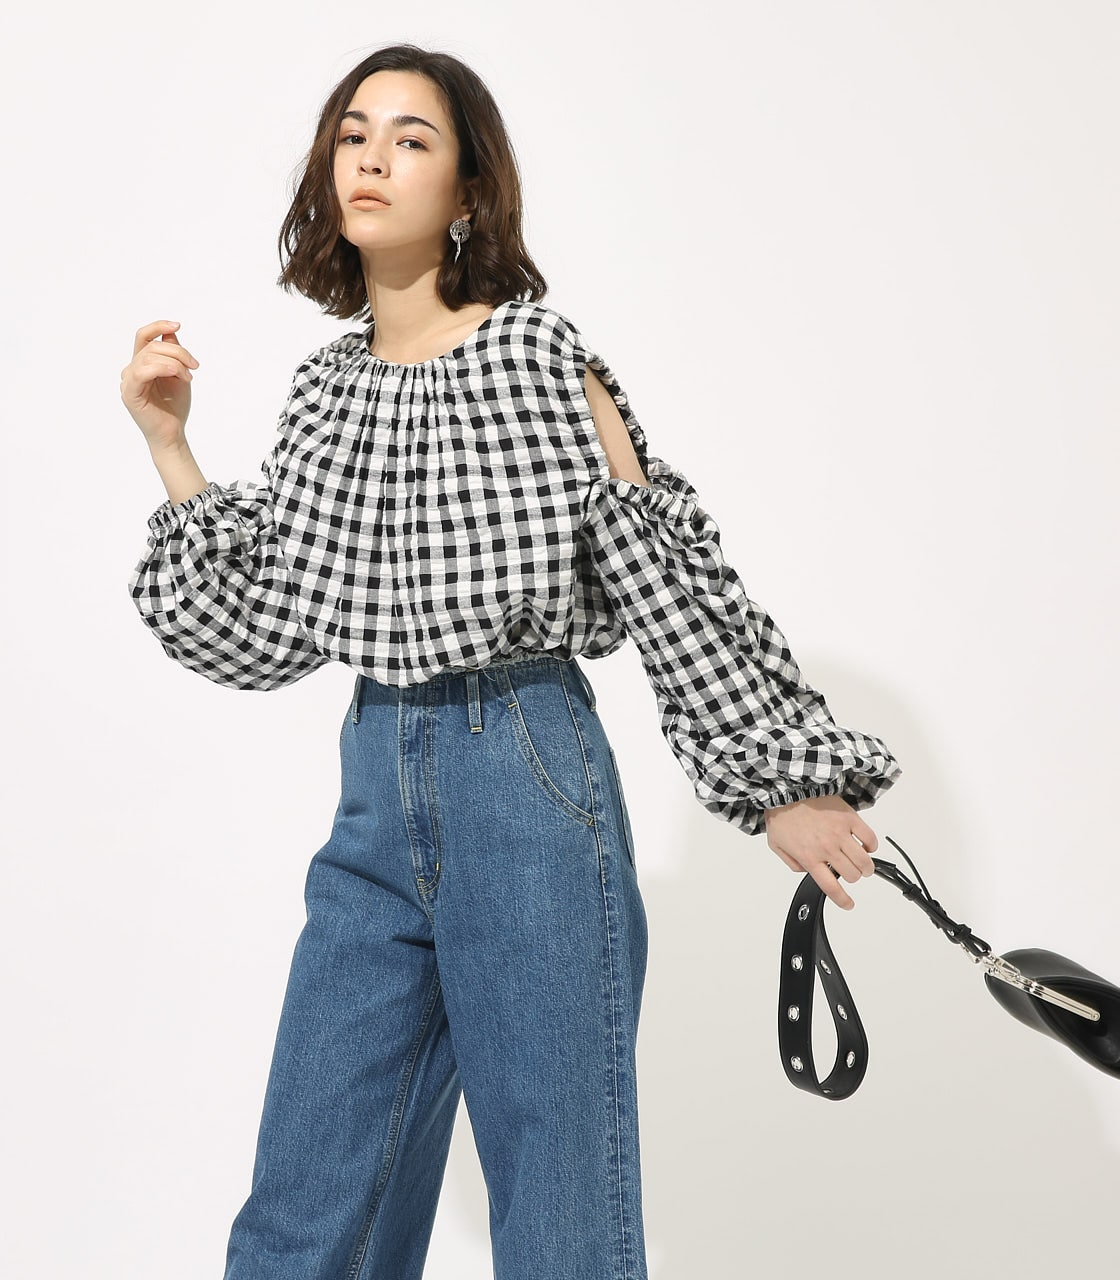 【AZUL BY MOUSSY】GINGHAM OPEN SHOULDER TOPS 【MOOK49掲載 90053】 詳細画像 柄BLK 1